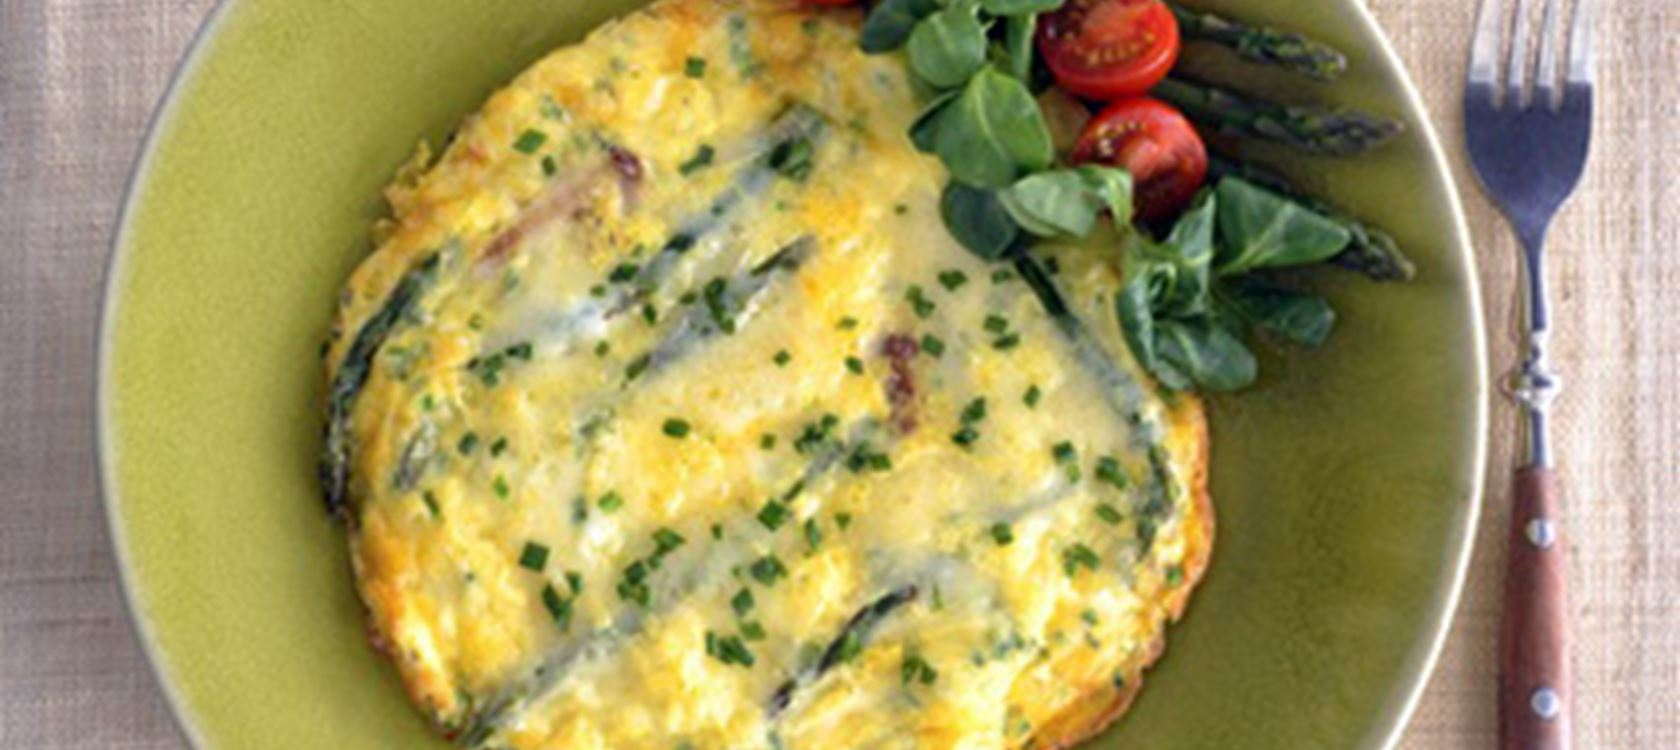 Asparagus Omelet with Havarti & Herbs